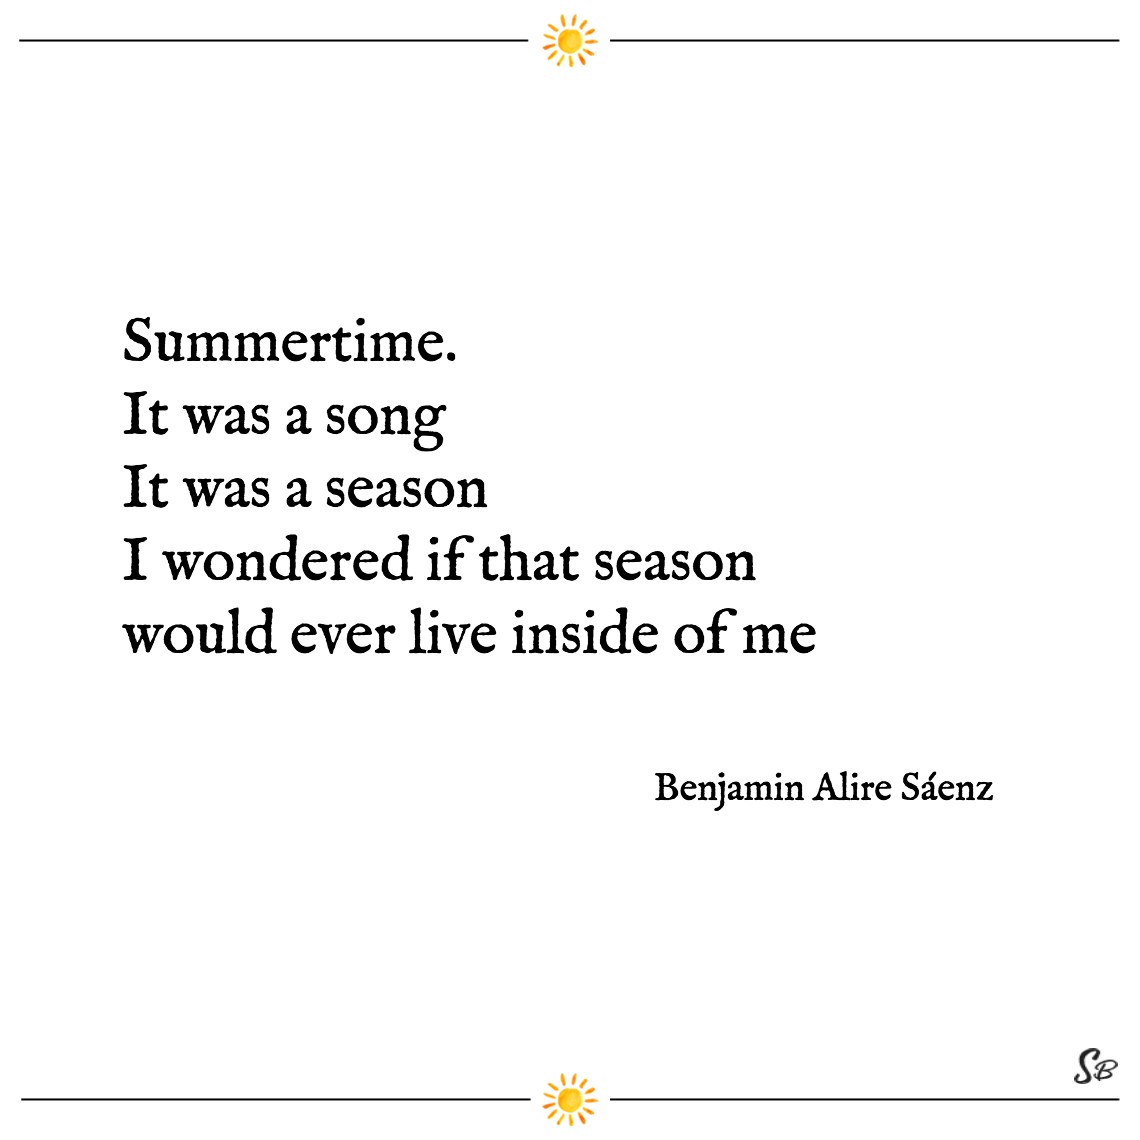 Summertime. it was a song it was a season i wondered if that season would ever live inside of me benjamin alire sáenz